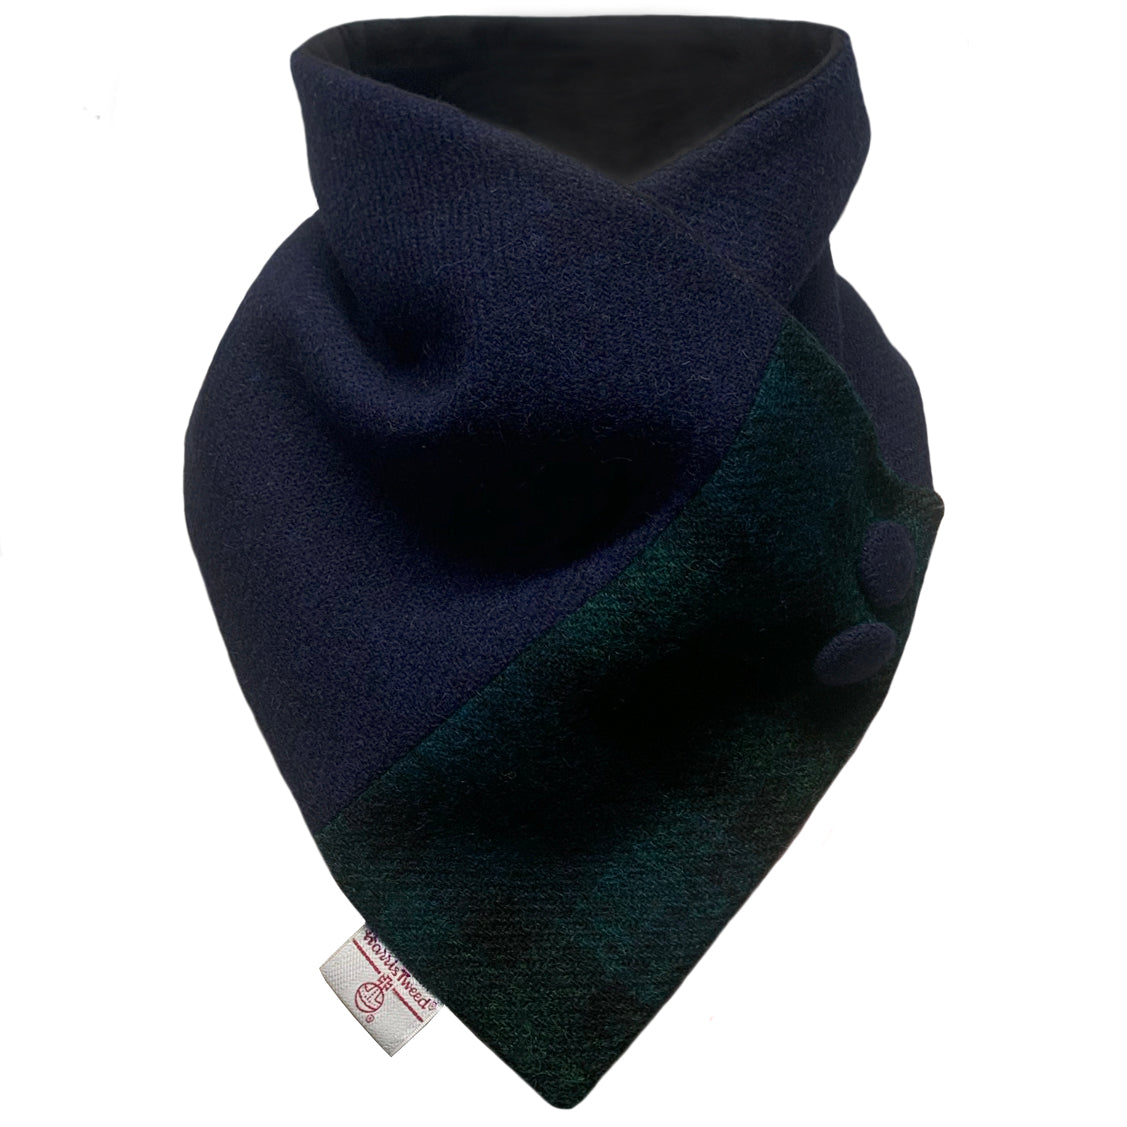 Navy with Black Watch Tartan Button Detail Neck Warmer